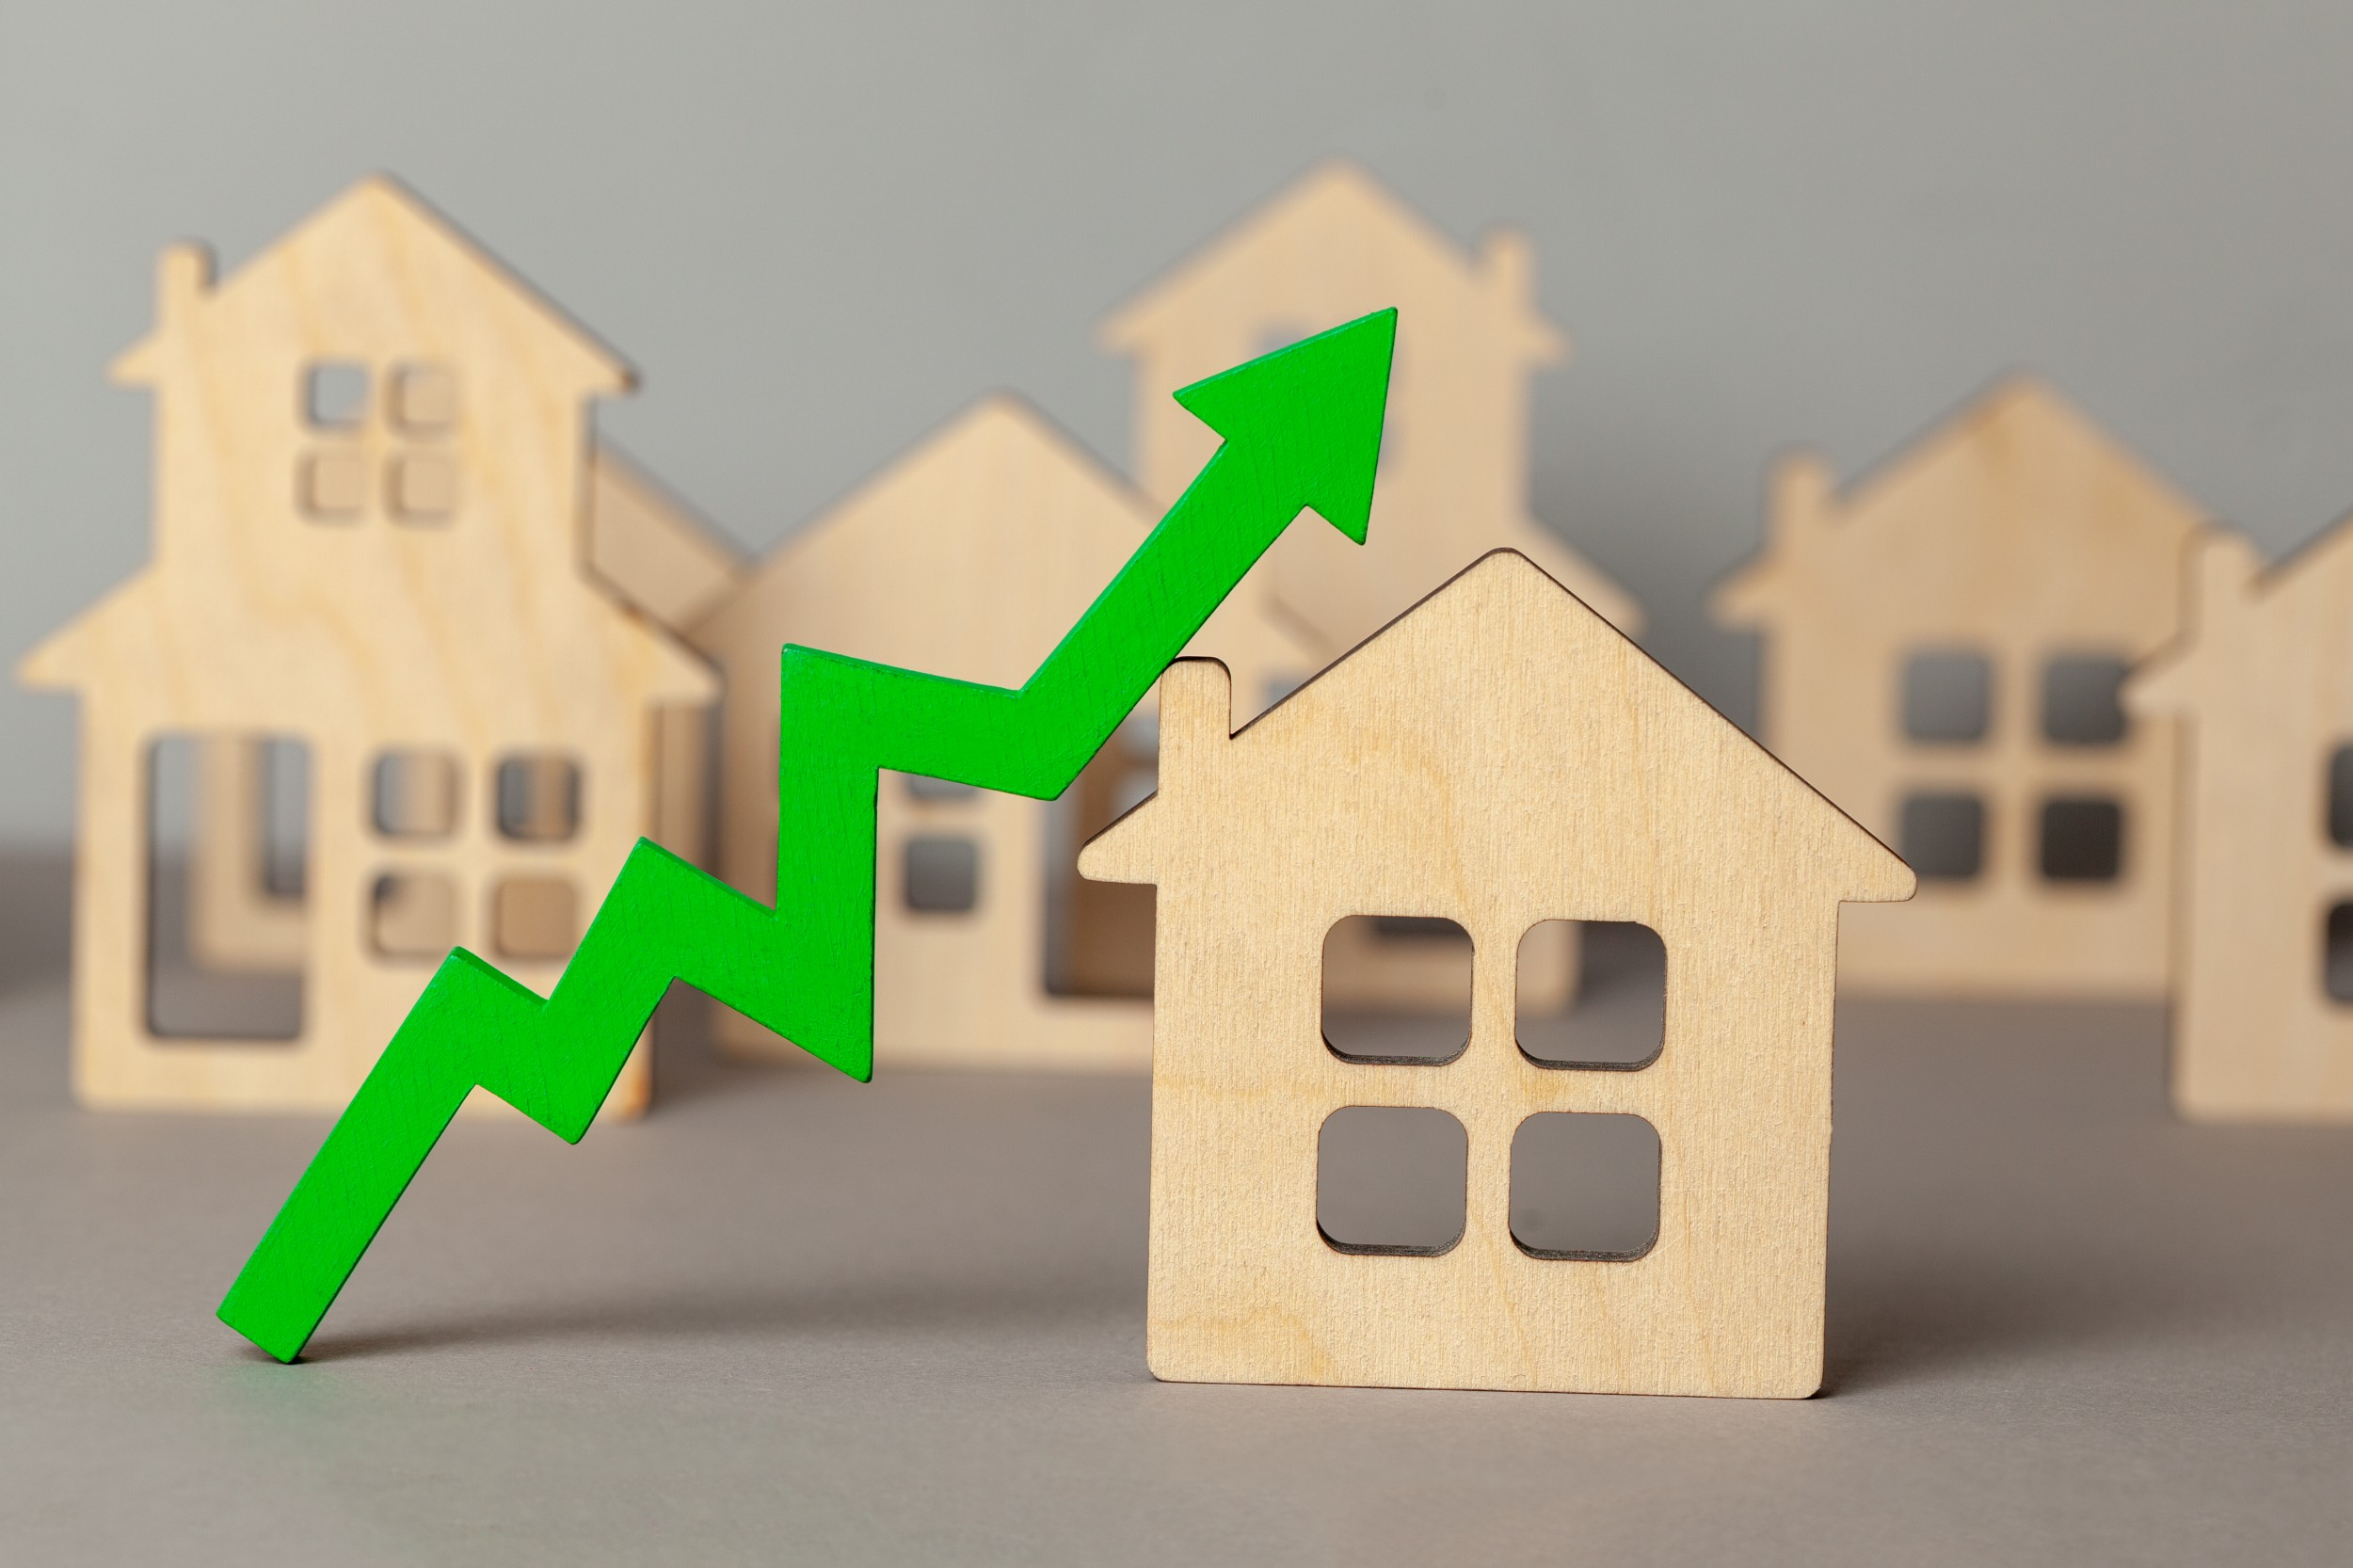 The housing market soars after Stamp Duty announcement